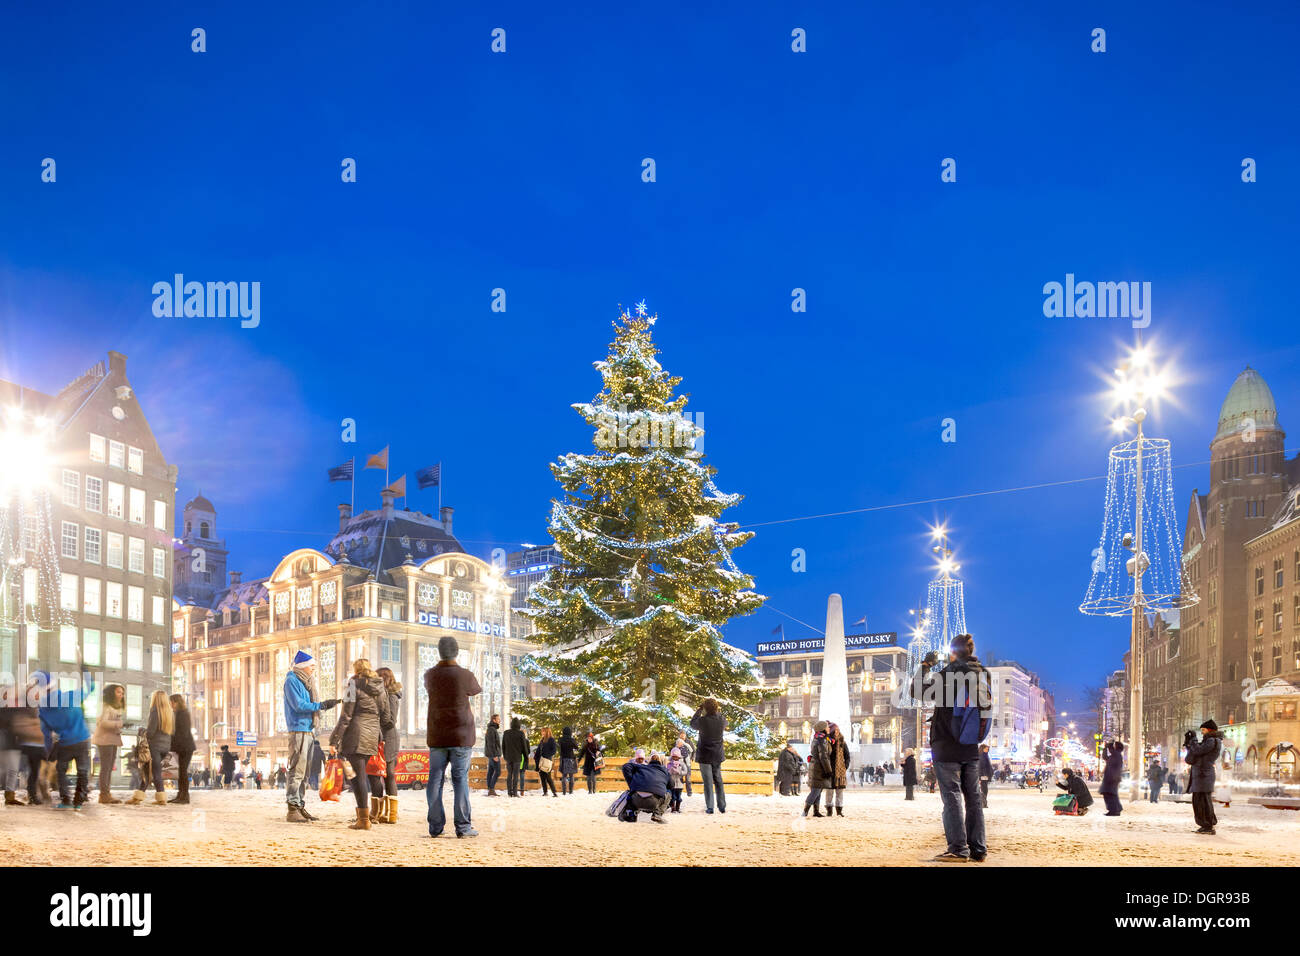 Amsterdam Christmas Tree w snow, Xmas lights in Dam Square with people, tourists, visitors, posing and taking pictures at dusk - Stock Image